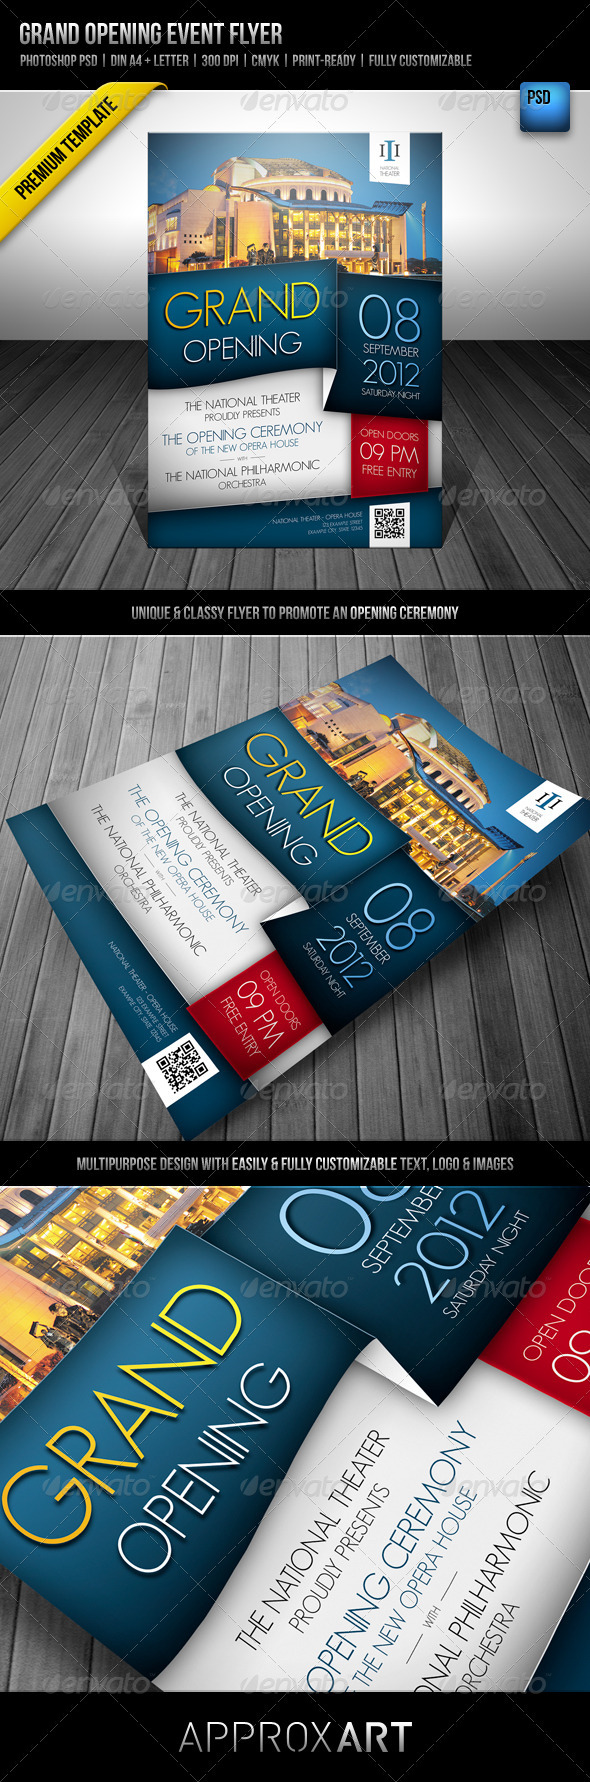 GraphicRiver Grand Opening Event Flyer 2092450